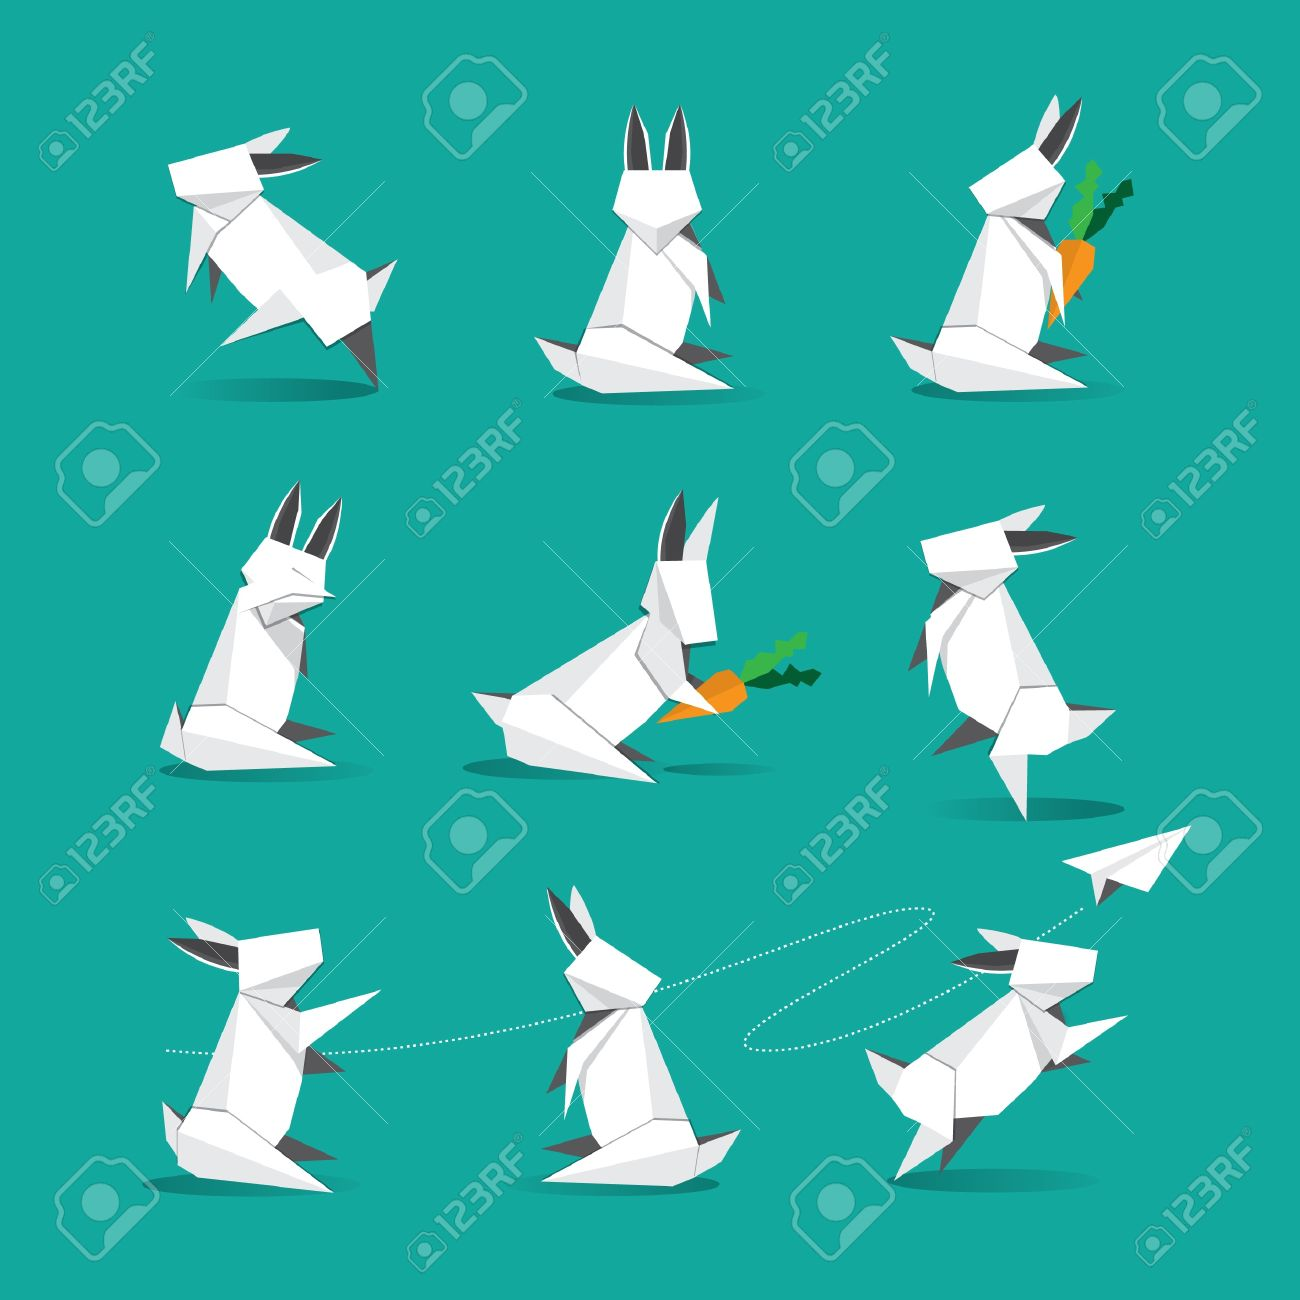 Cute Origami White Rabbit Royalty Free Cliparts Vectors And Stock